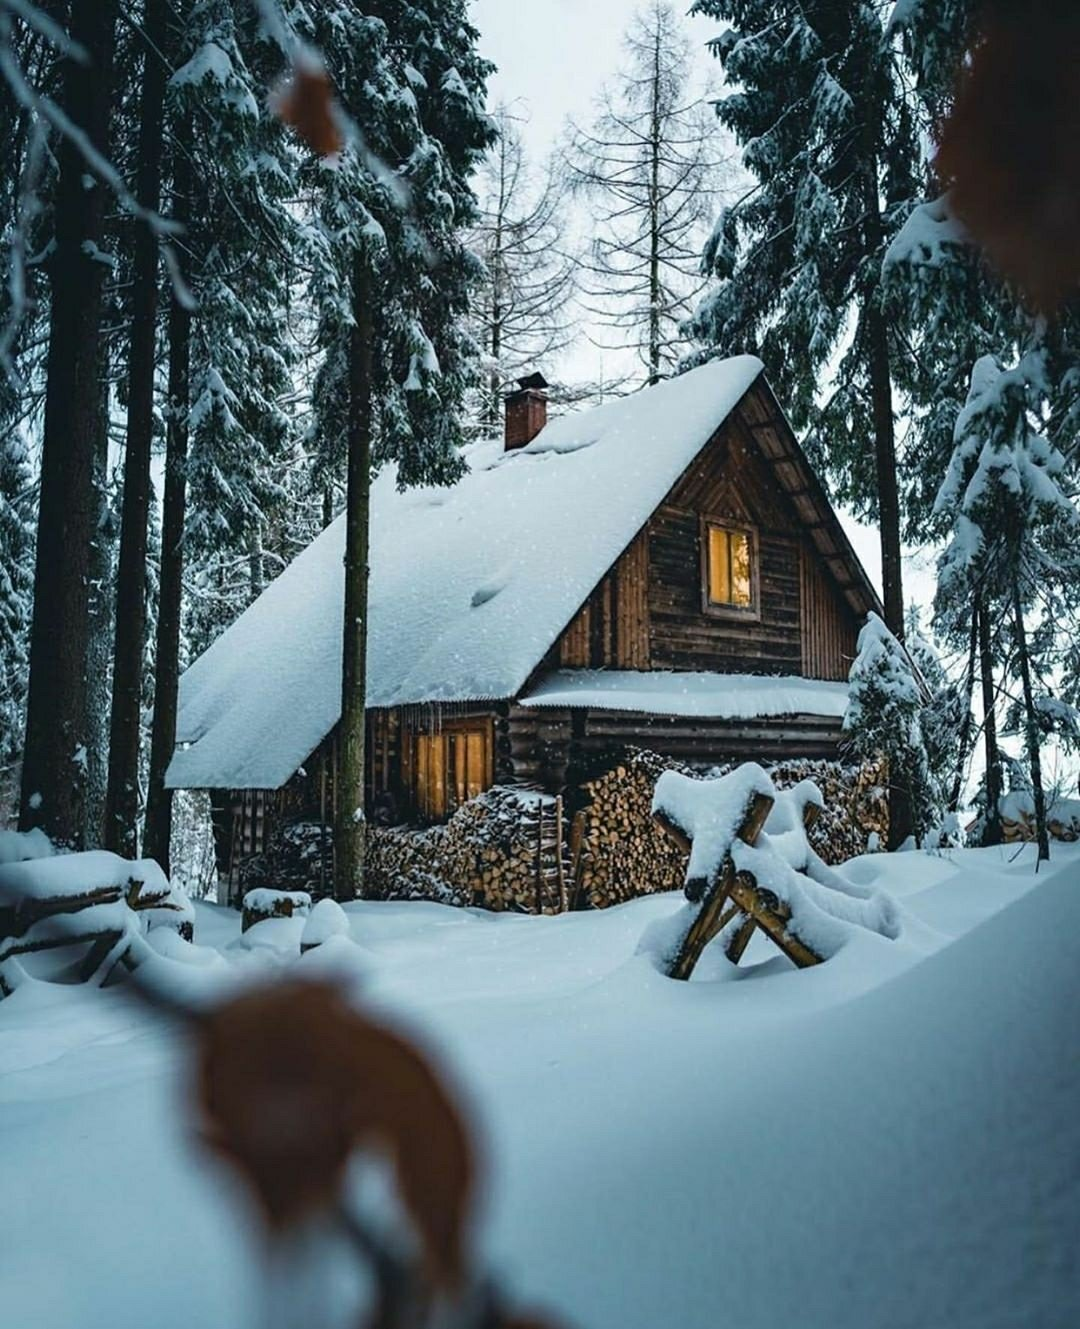 log cabin in snow with firewood